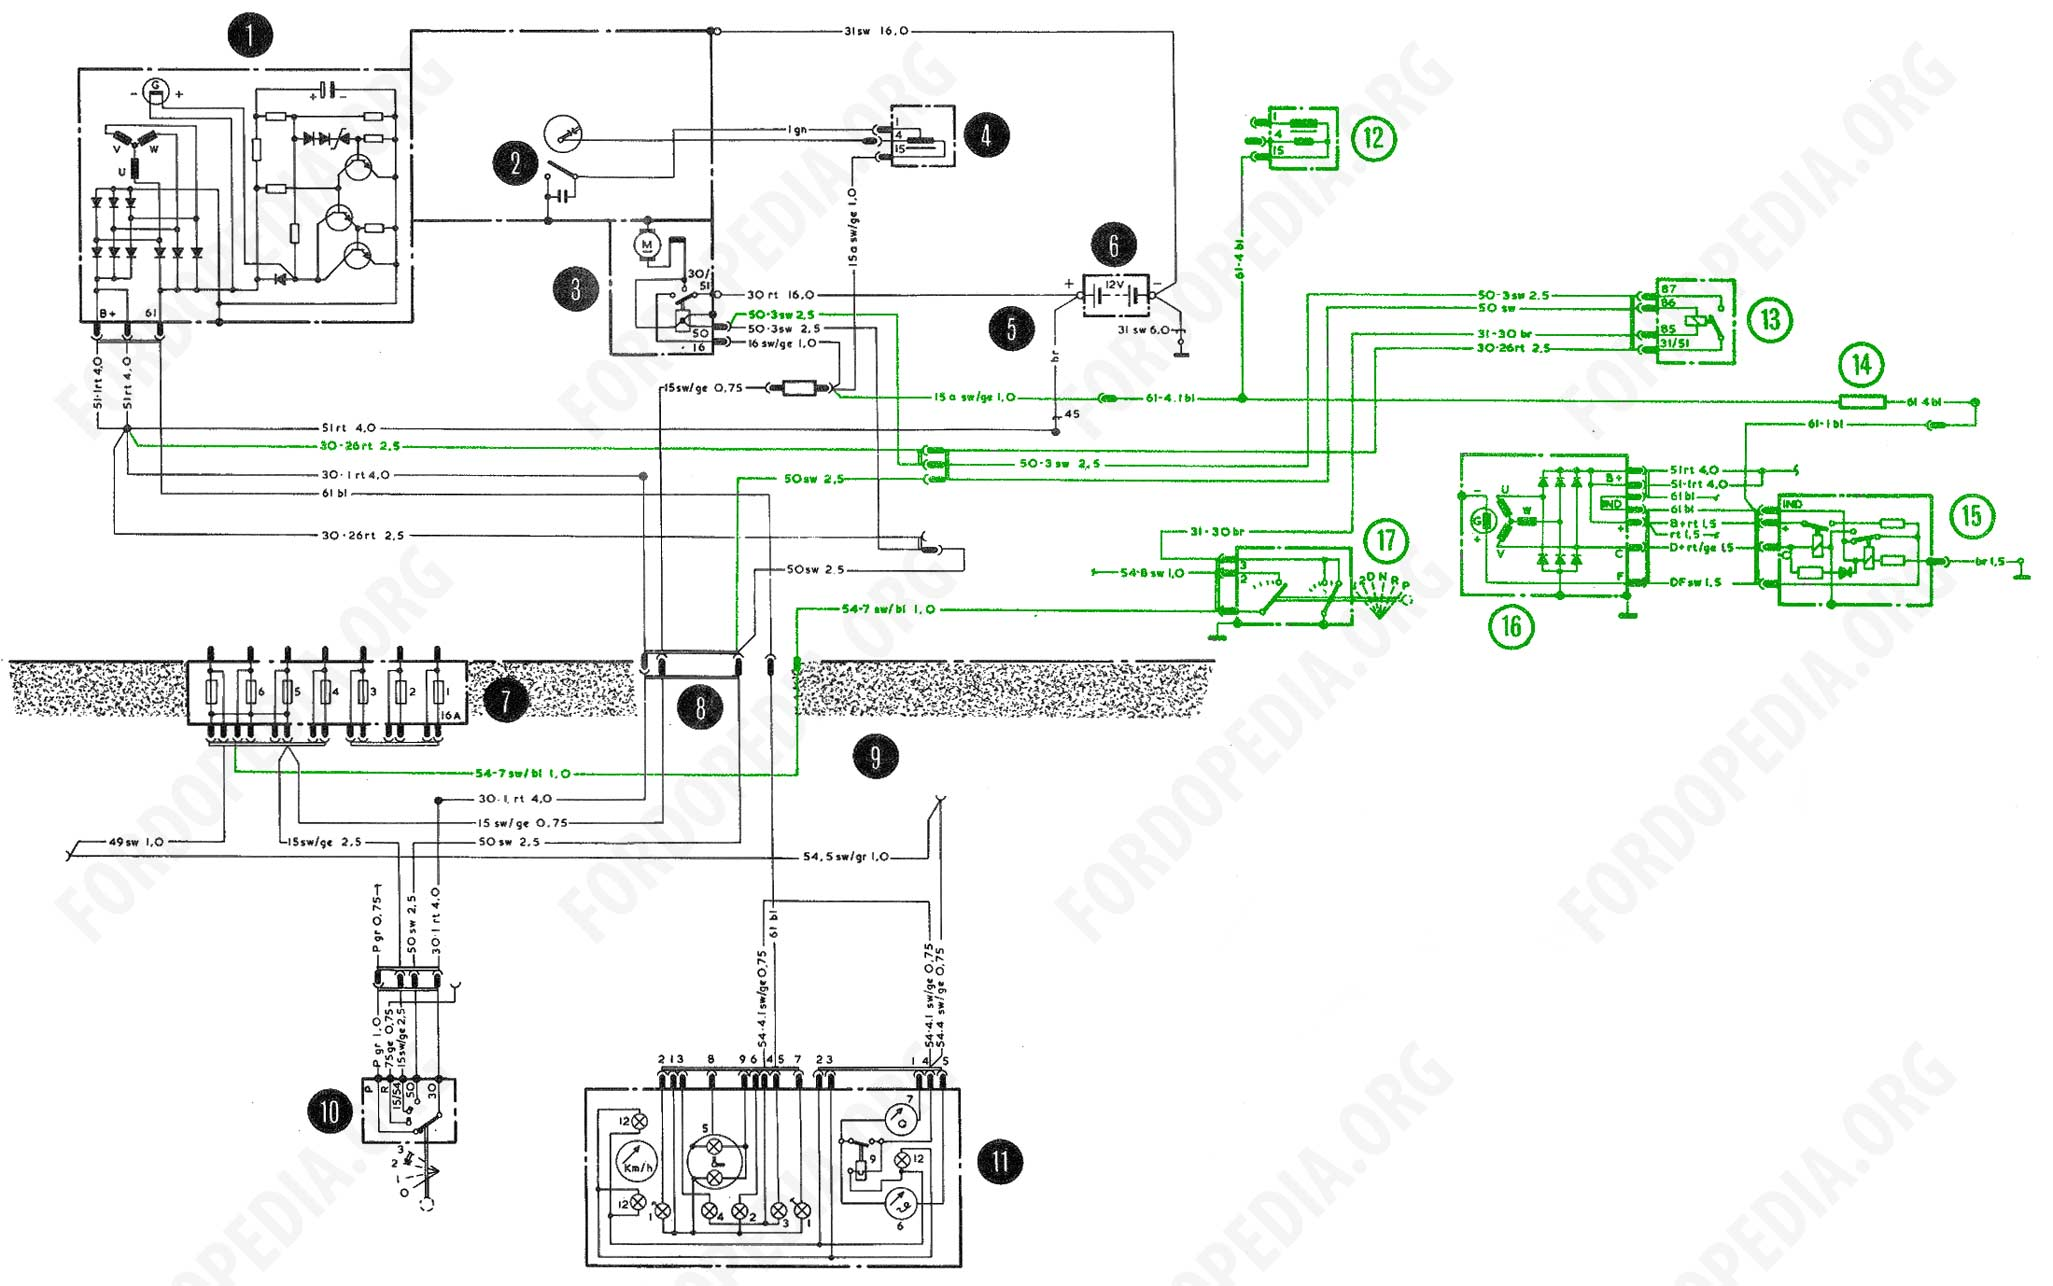 base L GL charging starter ignition circuit fordopedia org coil ignition wiring diagram at n-0.co